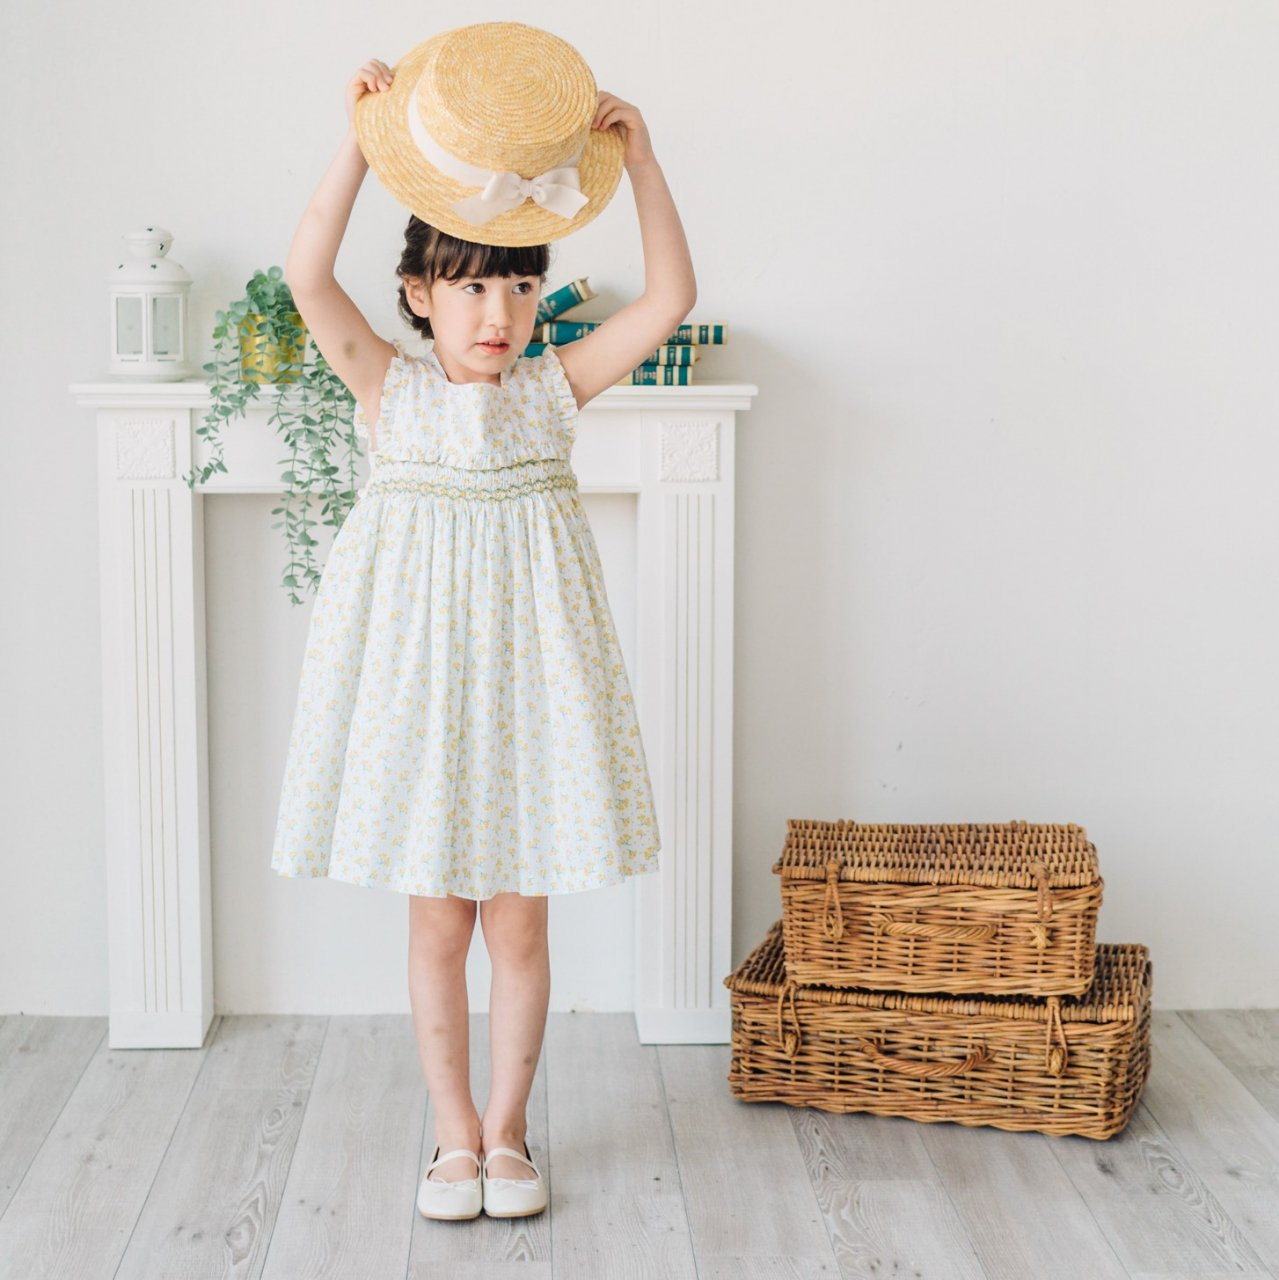 <img class='new_mark_img1' src='https://img.shop-pro.jp/img/new/icons14.gif' style='border:none;display:inline;margin:0px;padding:0px;width:auto;' />Pi & Pa - Floral square collar smocked dress